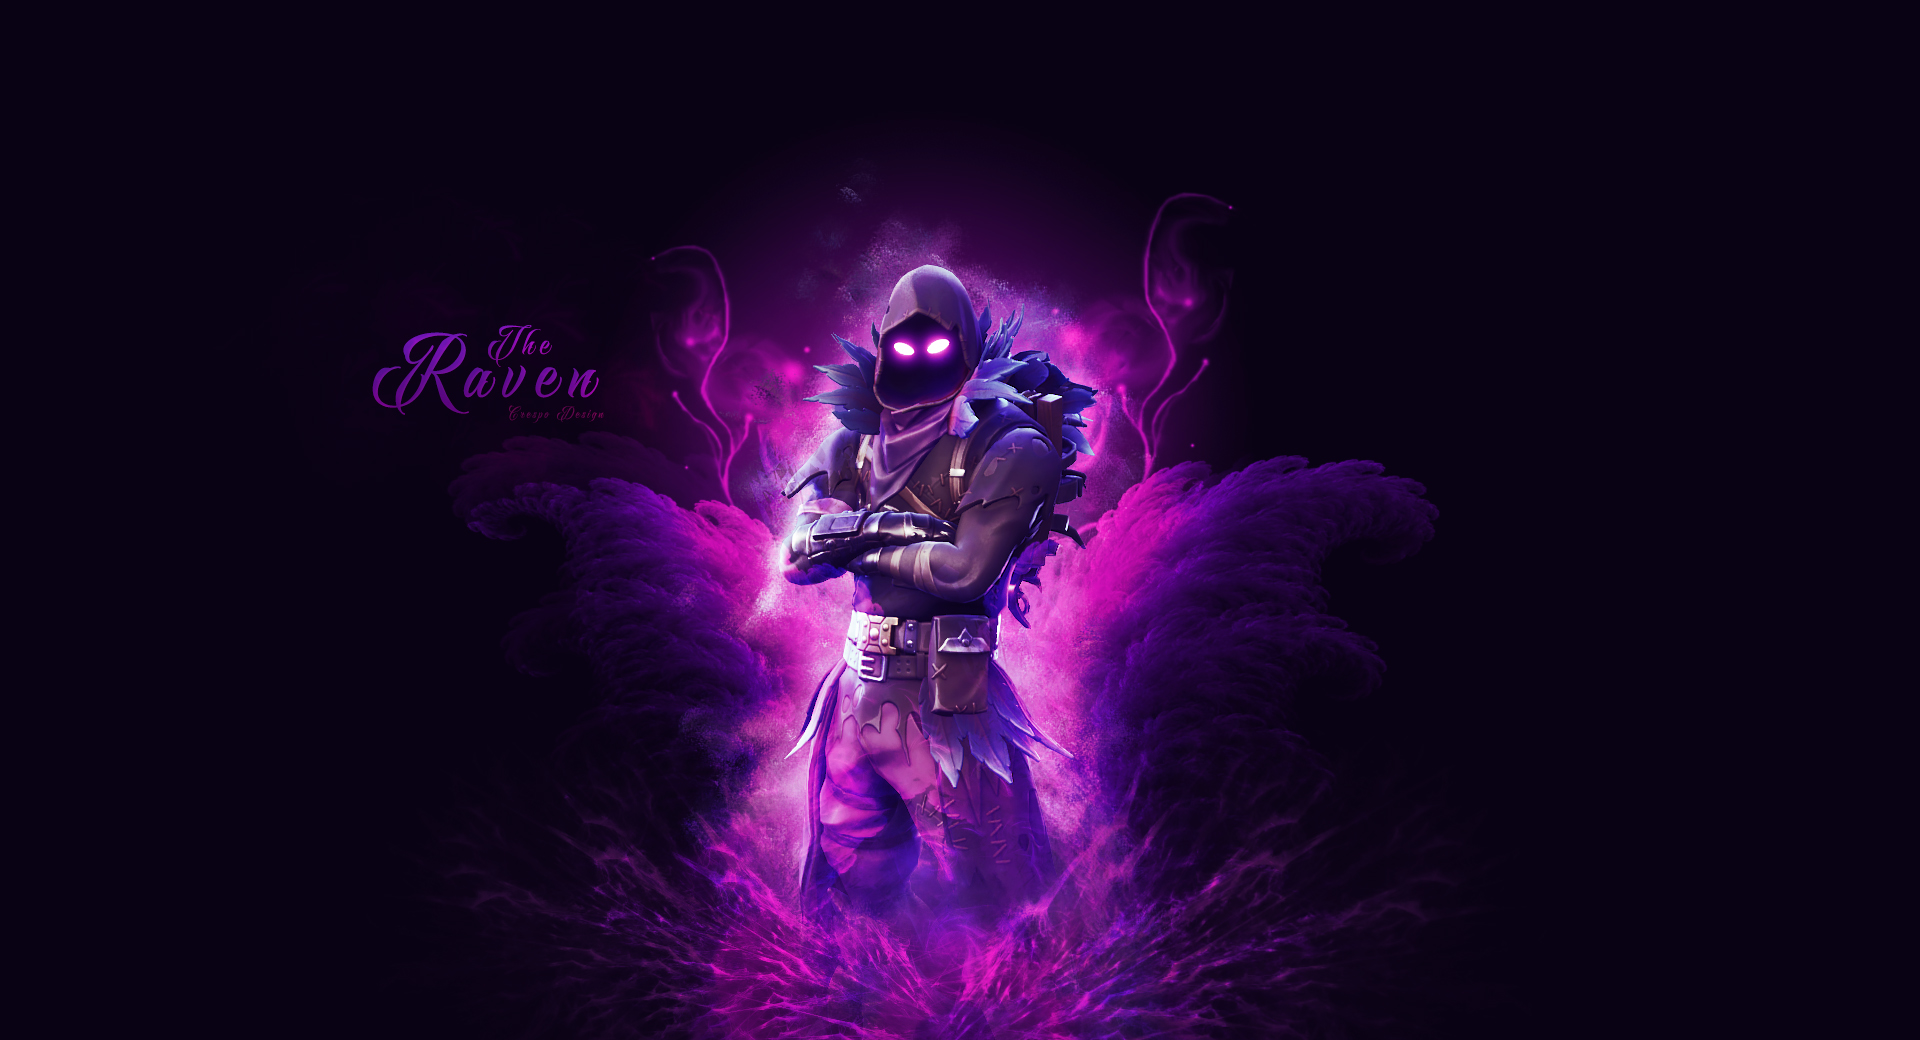 fortnite raven skin wallpaper by cre5po 4138 Wallpapers and 1920x1040